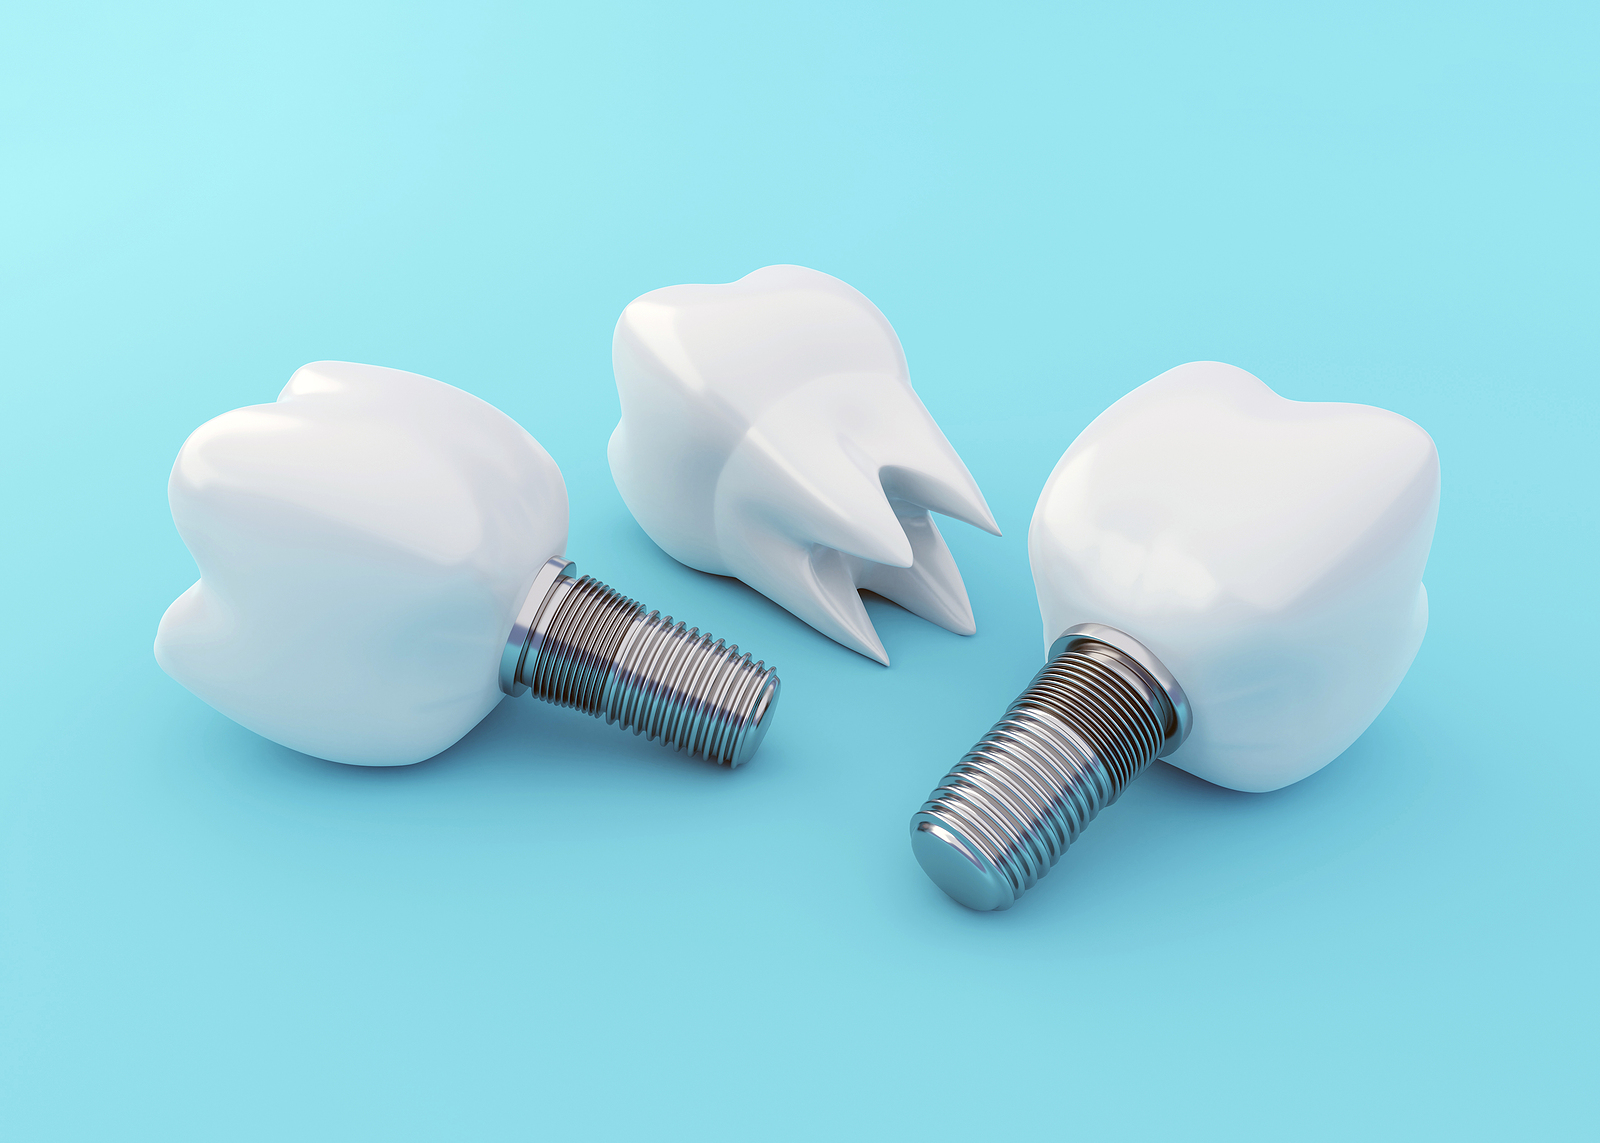 Artificial Tooth Implants and Tooth Crown on blue background